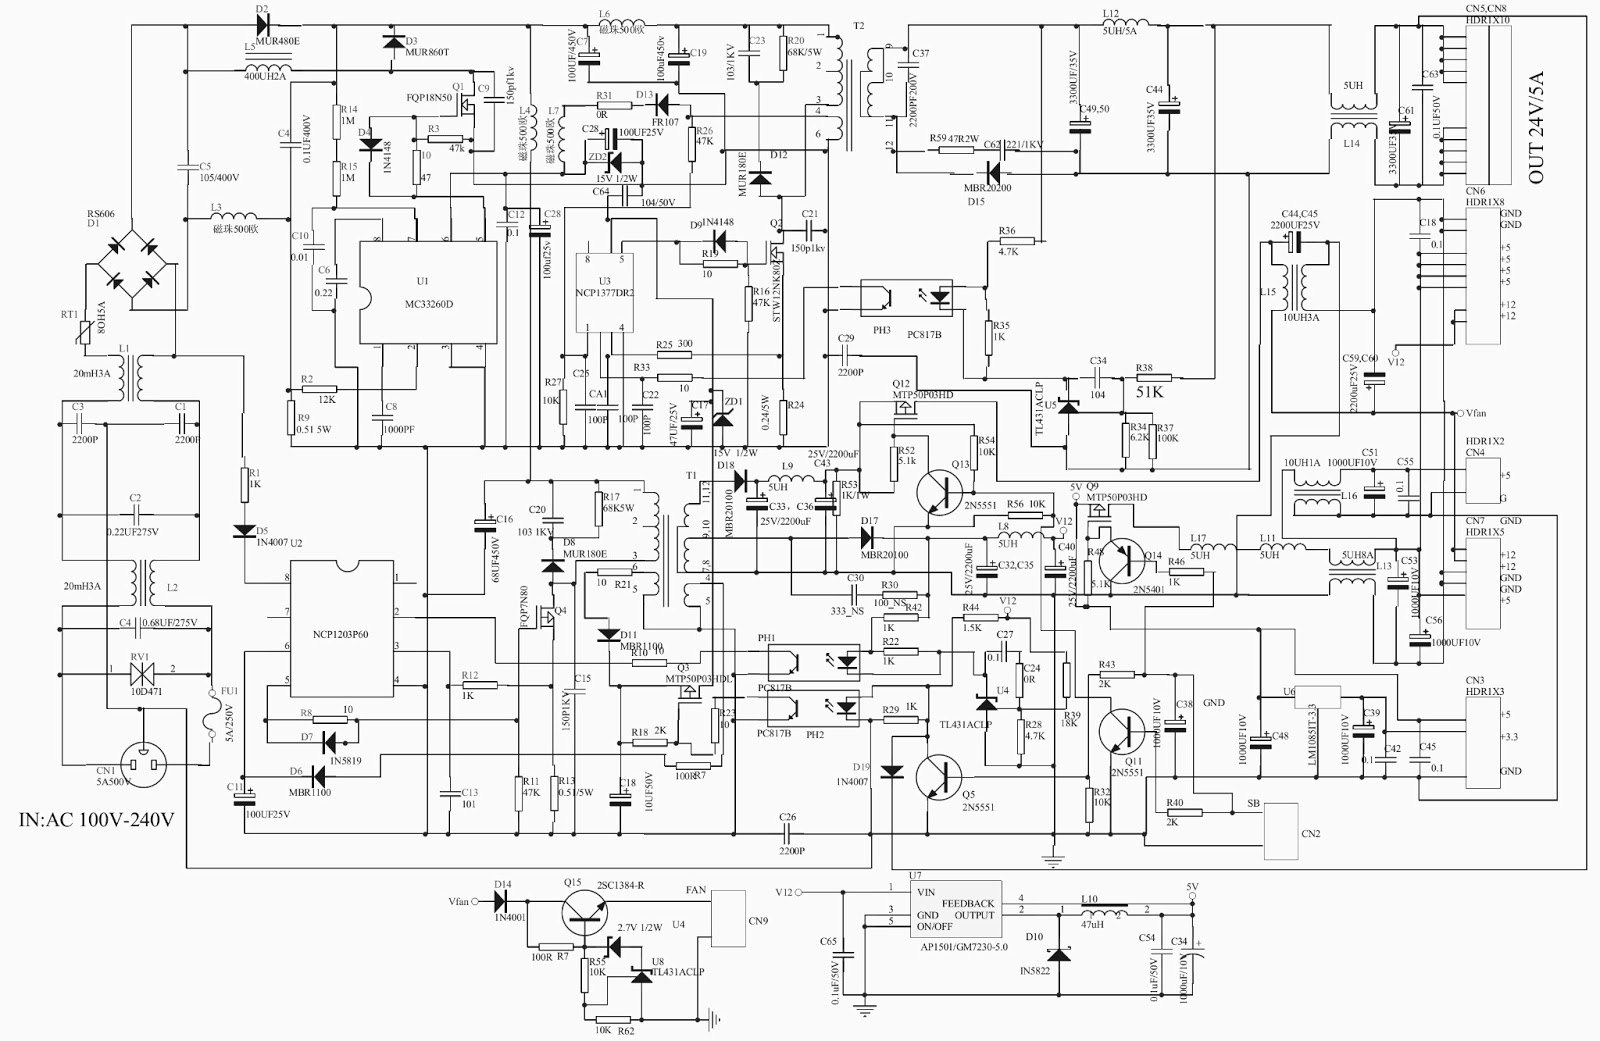 polytron tv schematic diagram wiring diagram rh rs48 lucia umami de  toshiba crt tv circuit diagram pdf